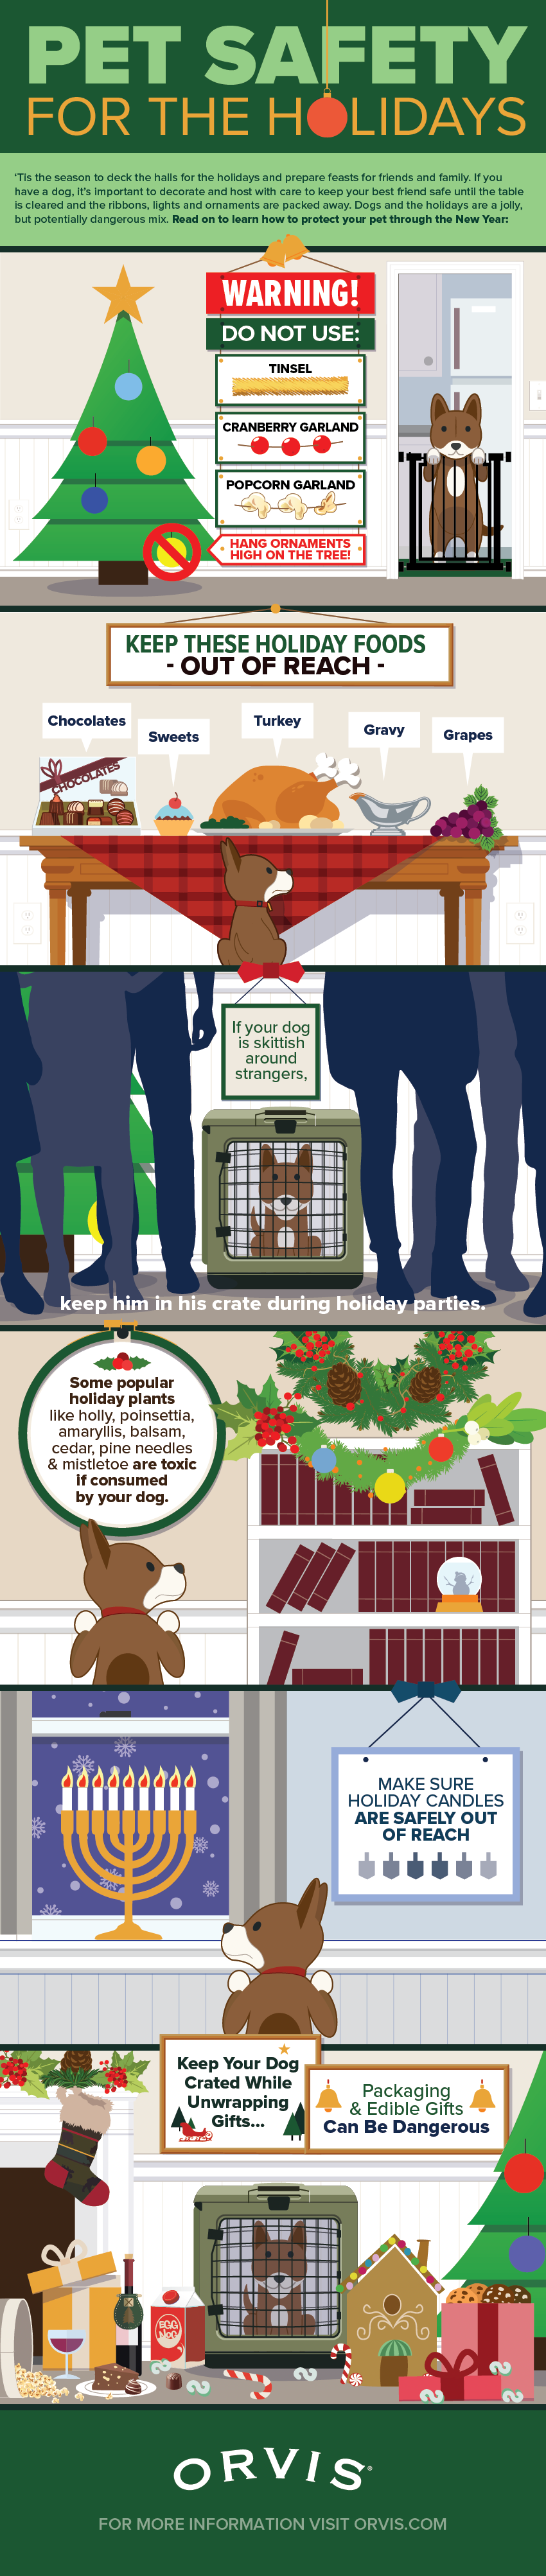 Orvis Pet Safety For The Holidays